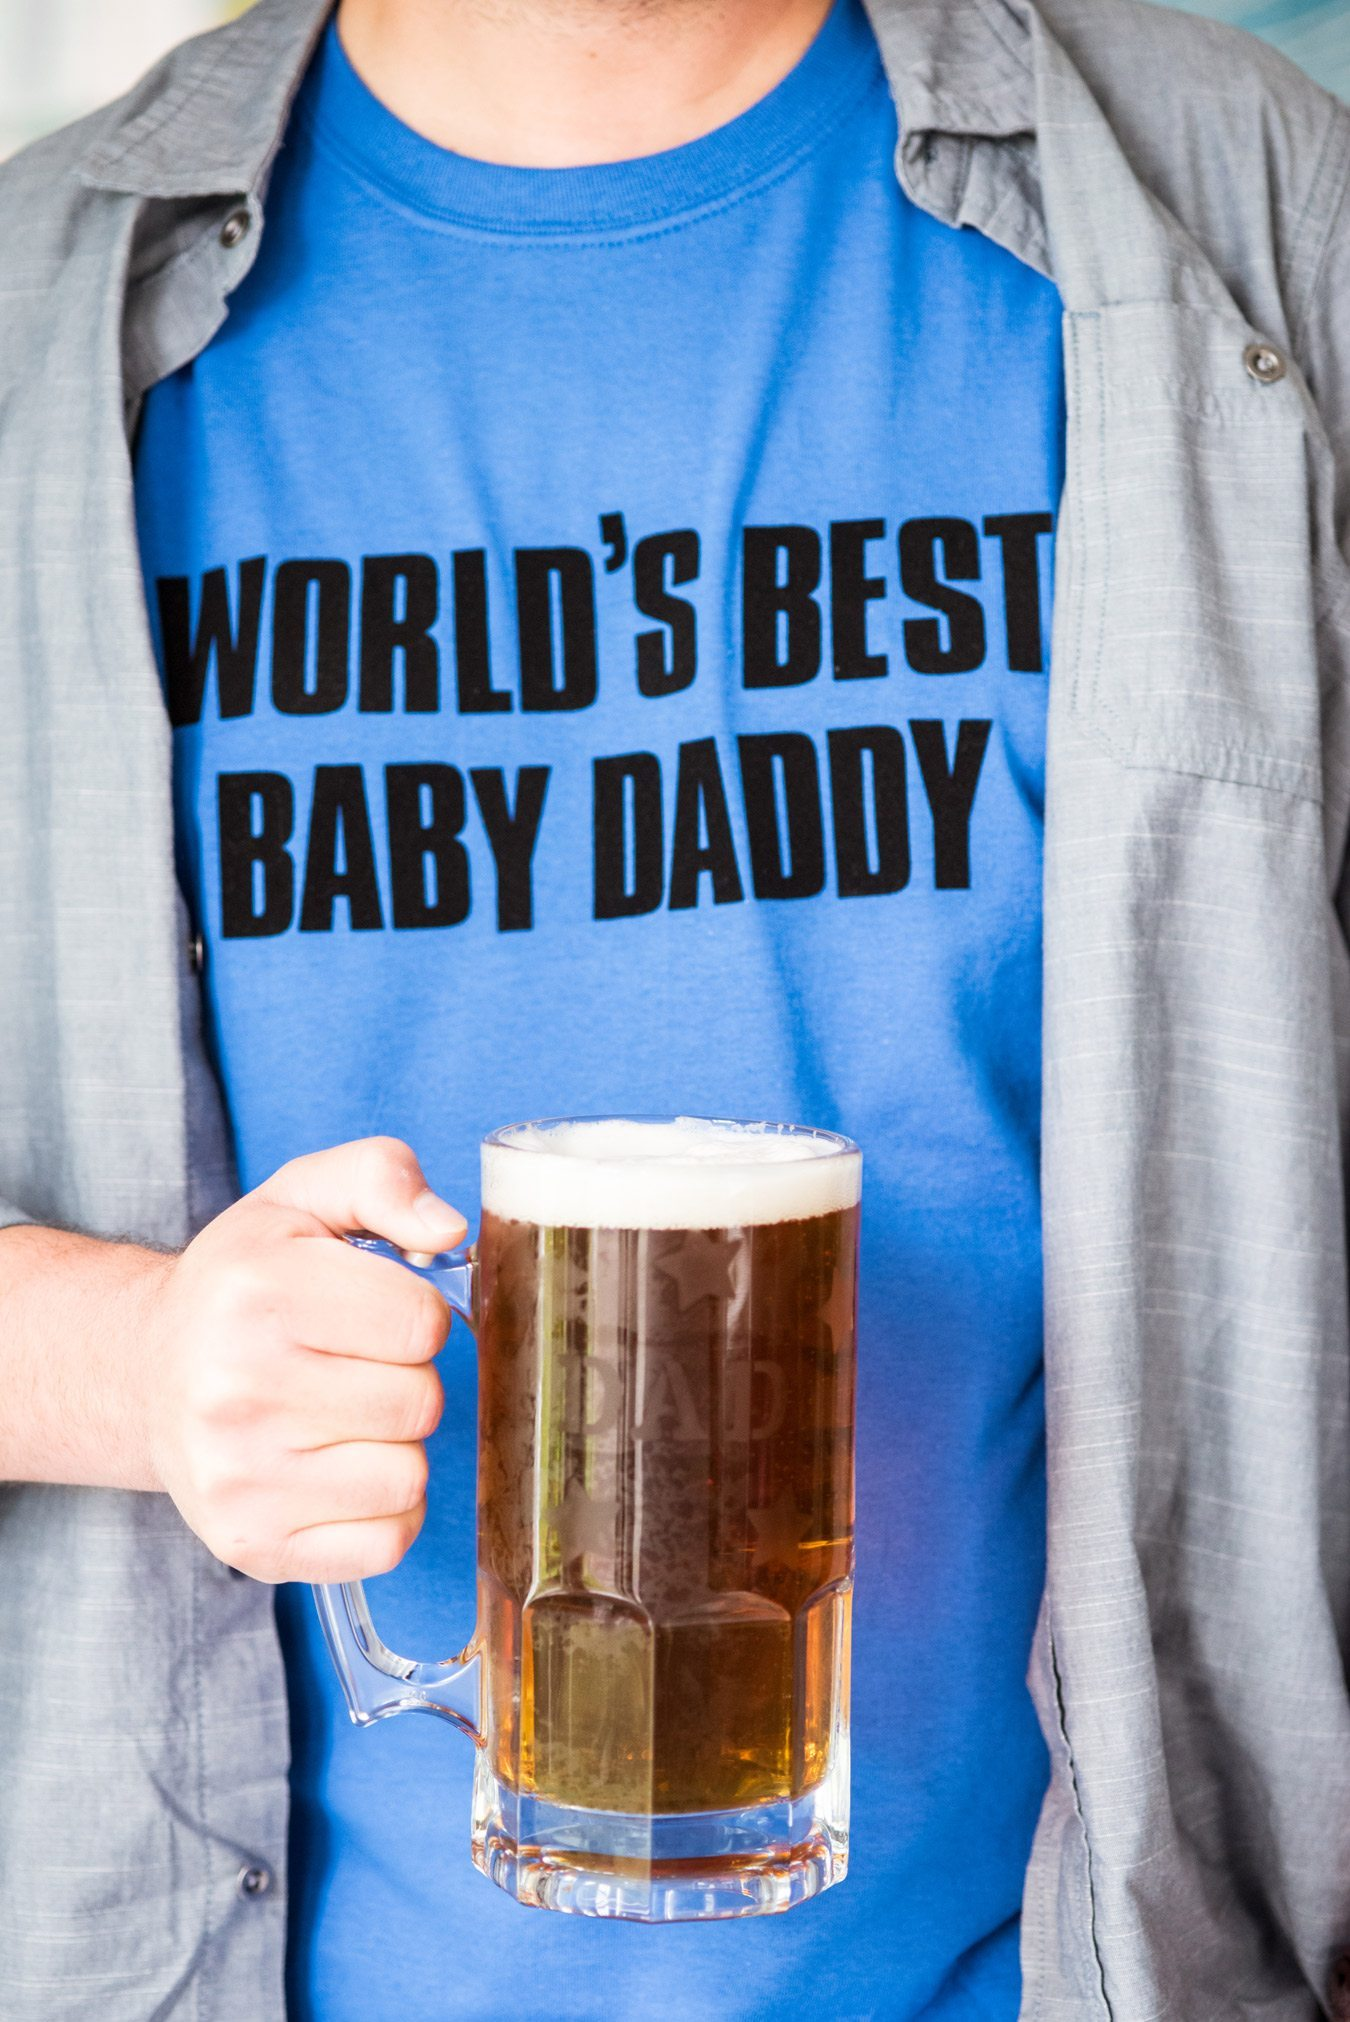 DIY Graphic Father's Day Shirts | Homemade gift ideas, Father's Day ideas, Father's Day gifts and more from @cydconverse